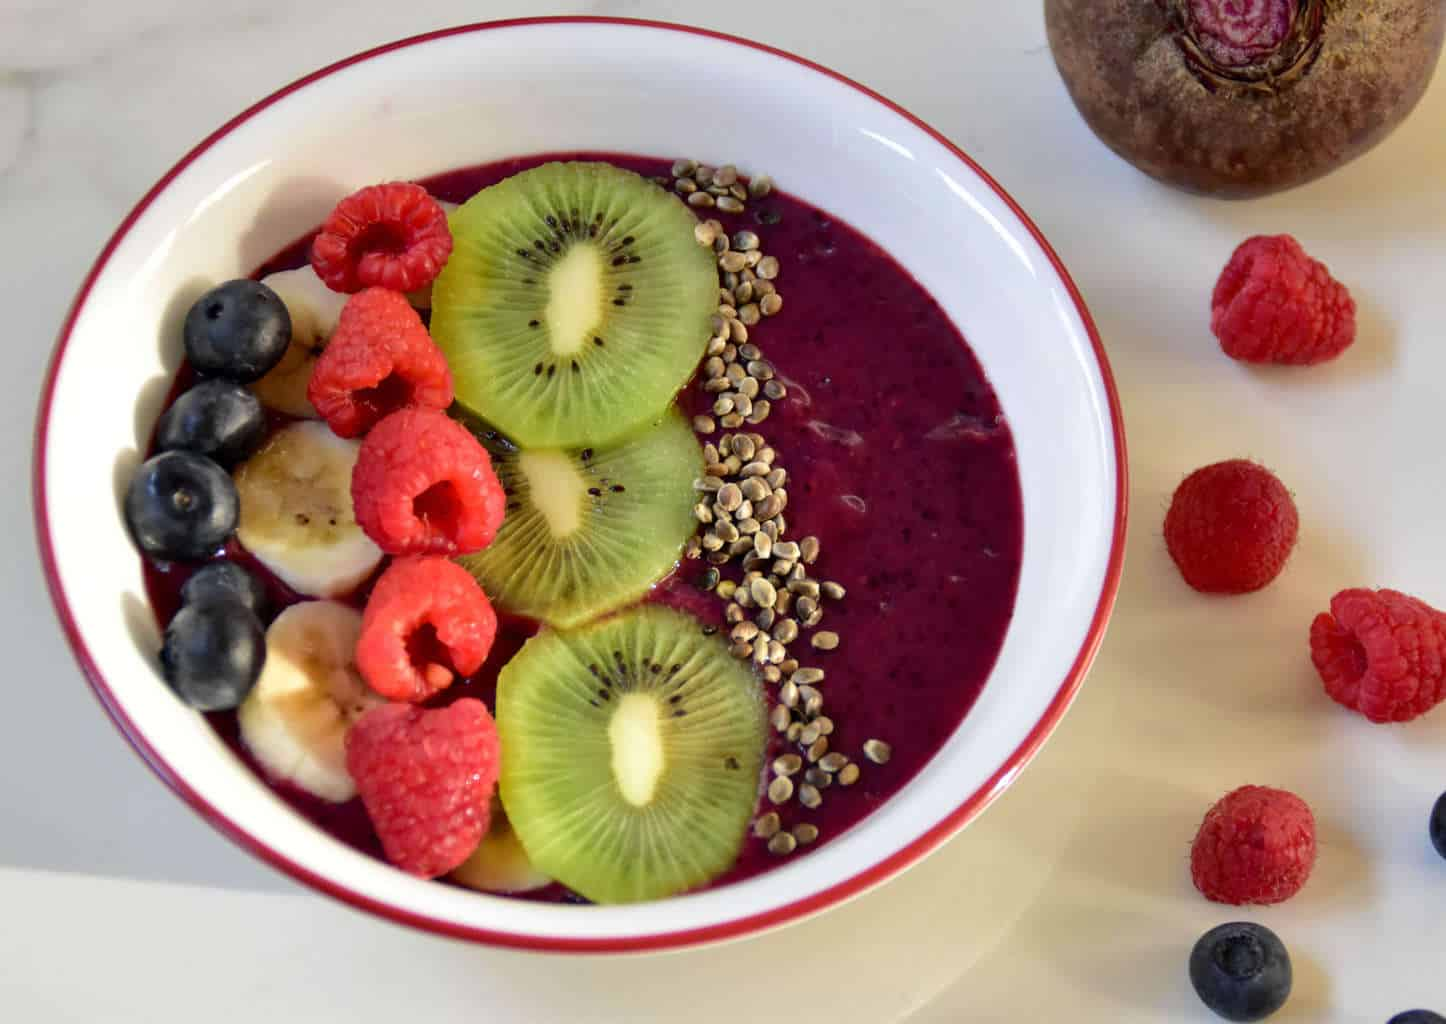 Antioxidant rich Beet Berry and Banana Smoothie bowl